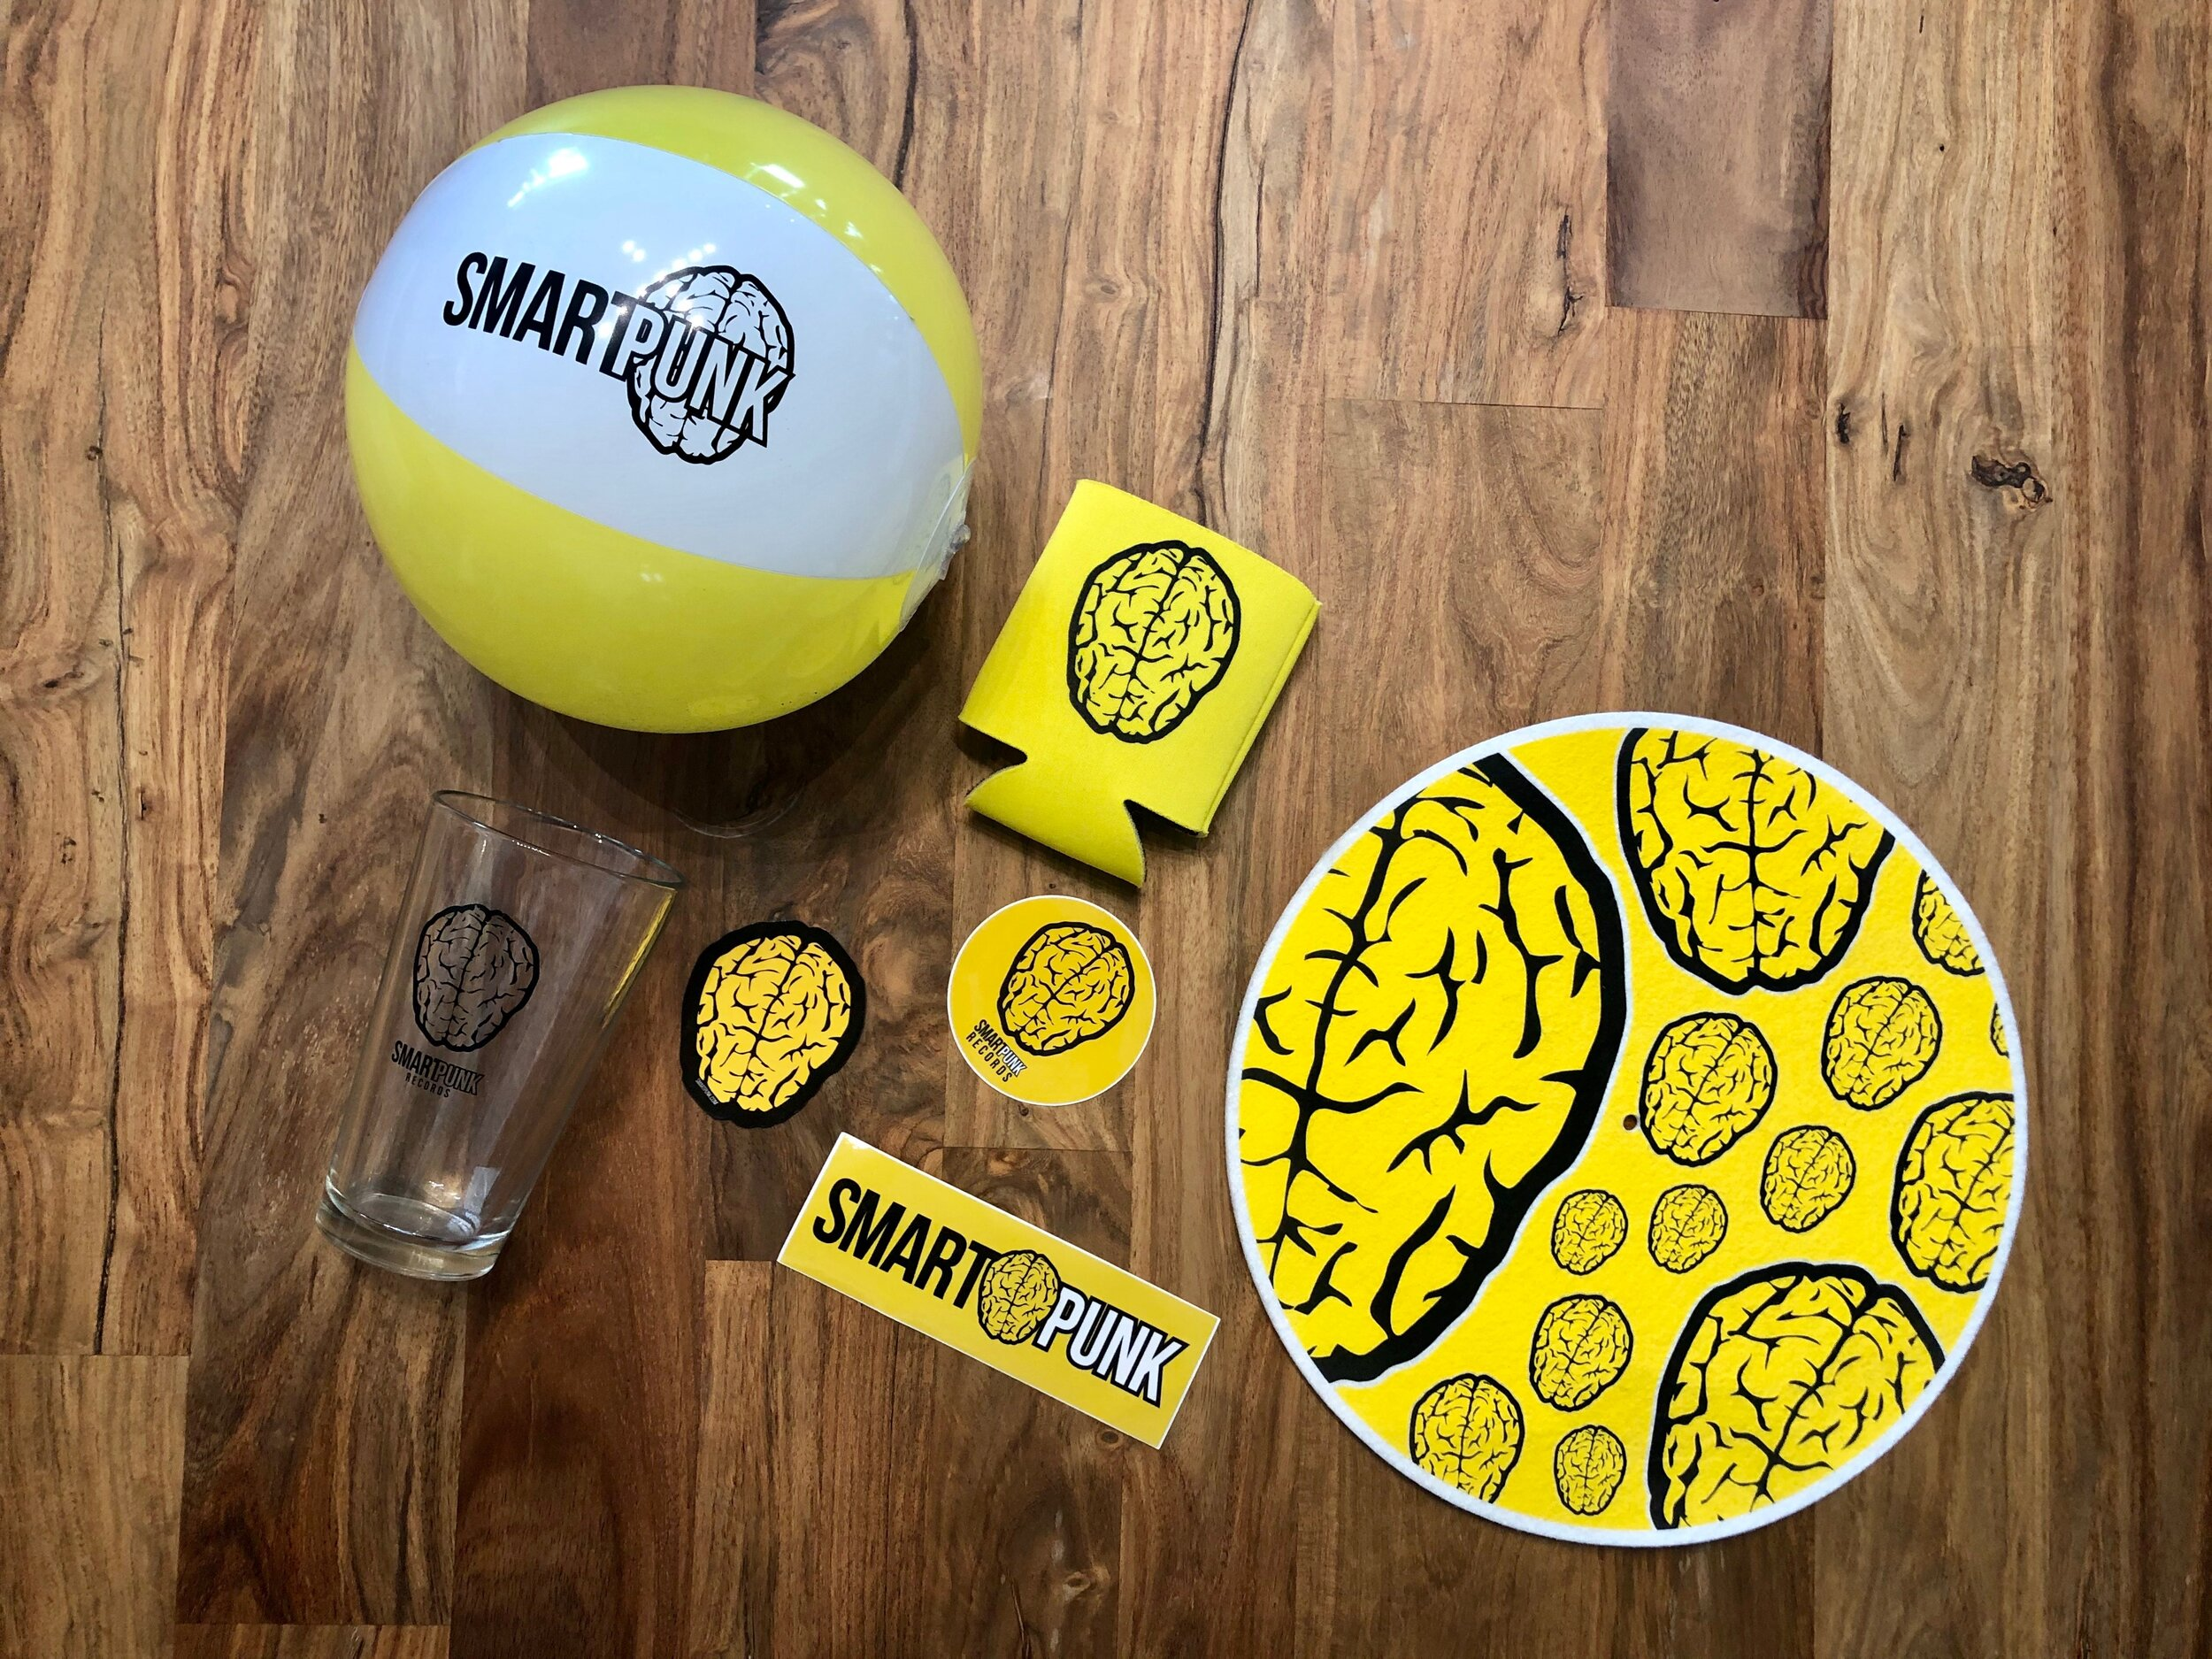 Smartpunk |   Record Label Promotional Items